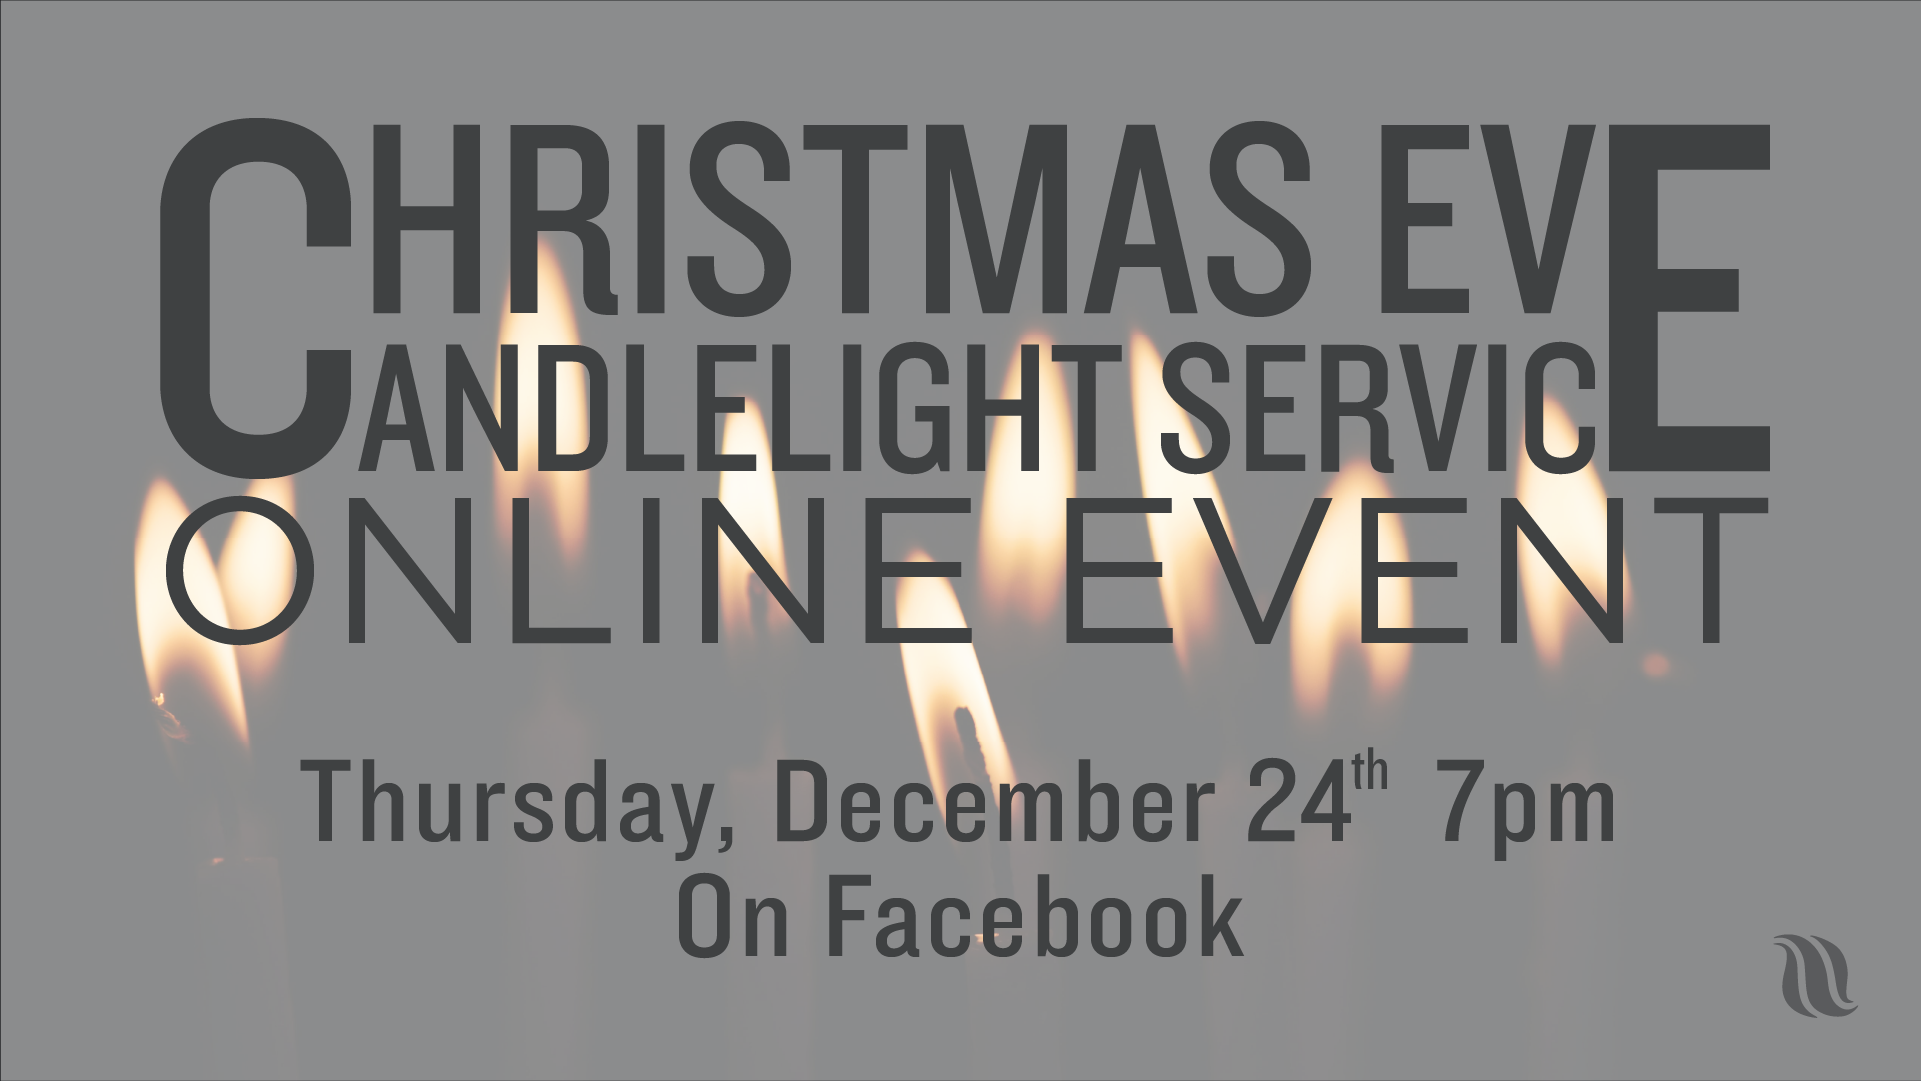 Christmas Eve event